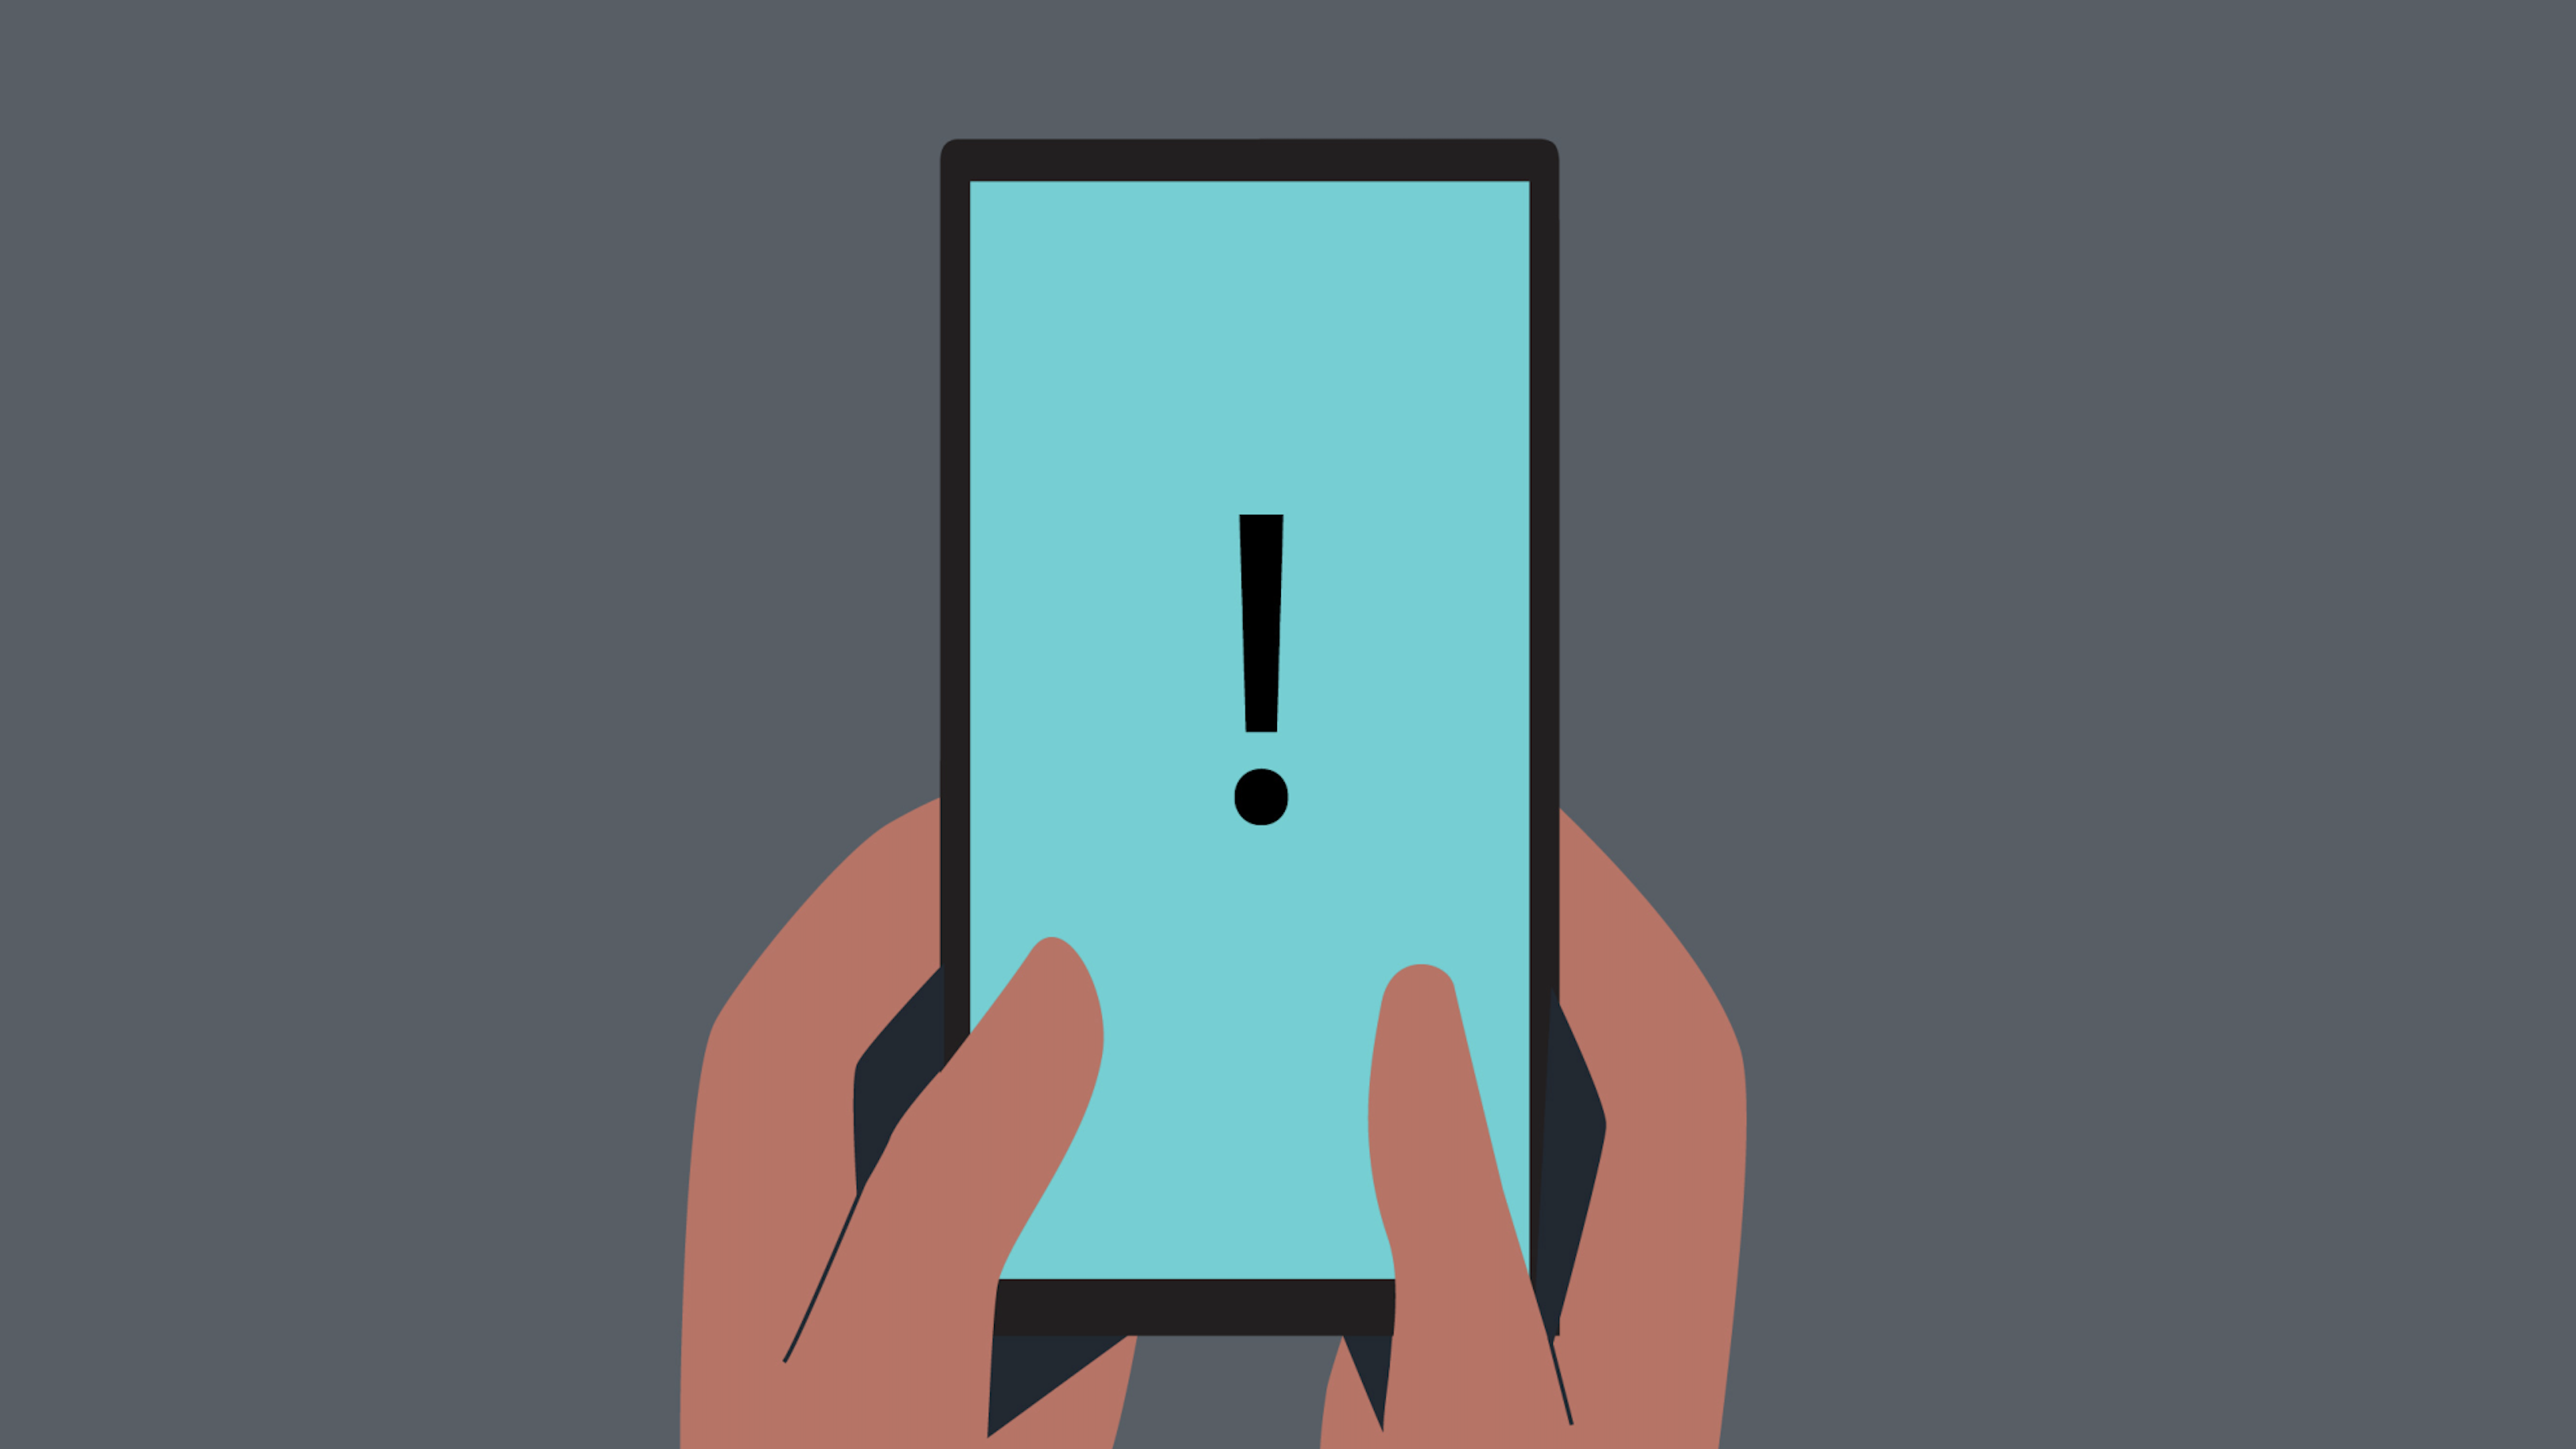 Illustration of a smartphone with an exclamation point on the screen